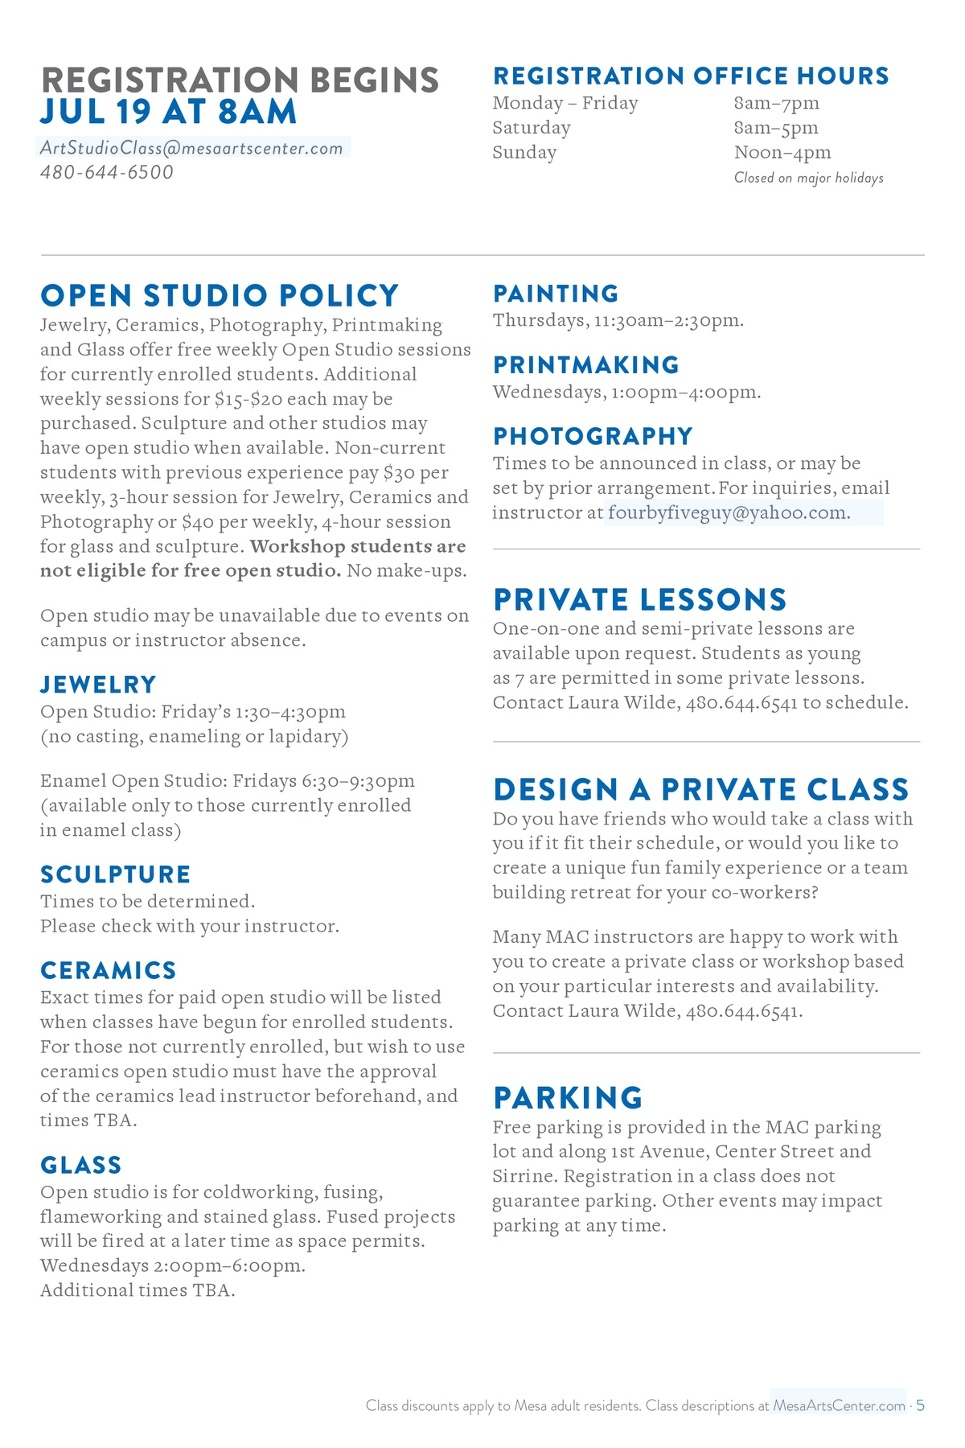 Arts Classes - Drama, Music, Painting, Ceramics, & Dance